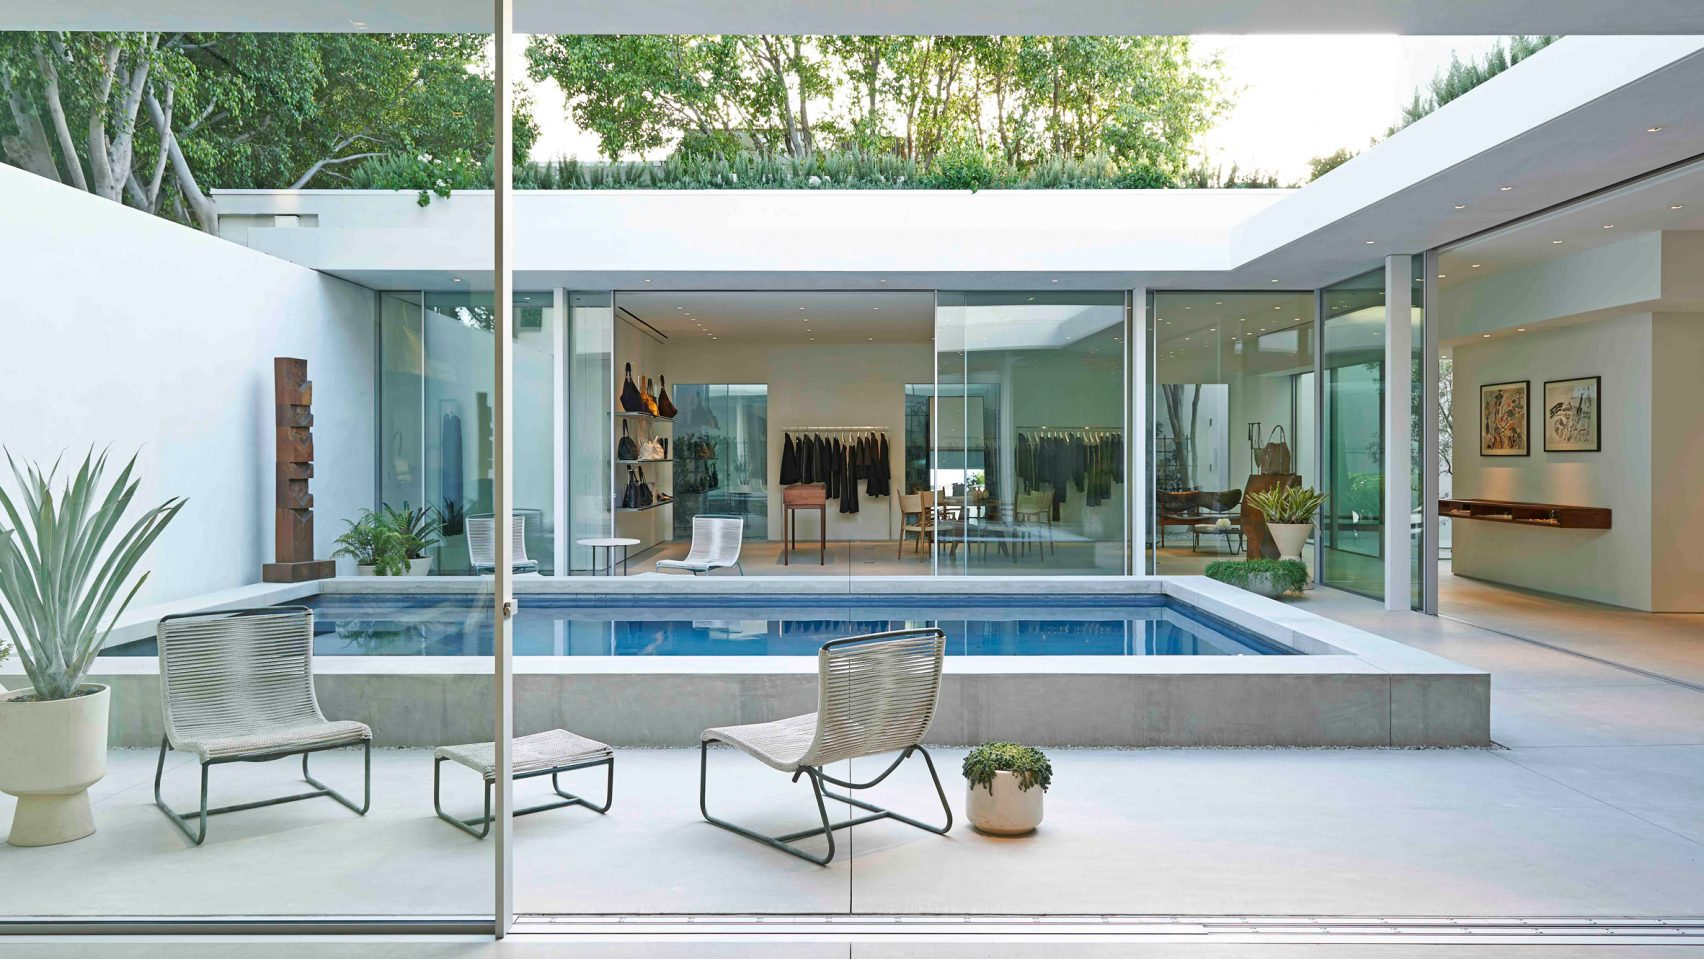 California Modernism | The Row Showroom